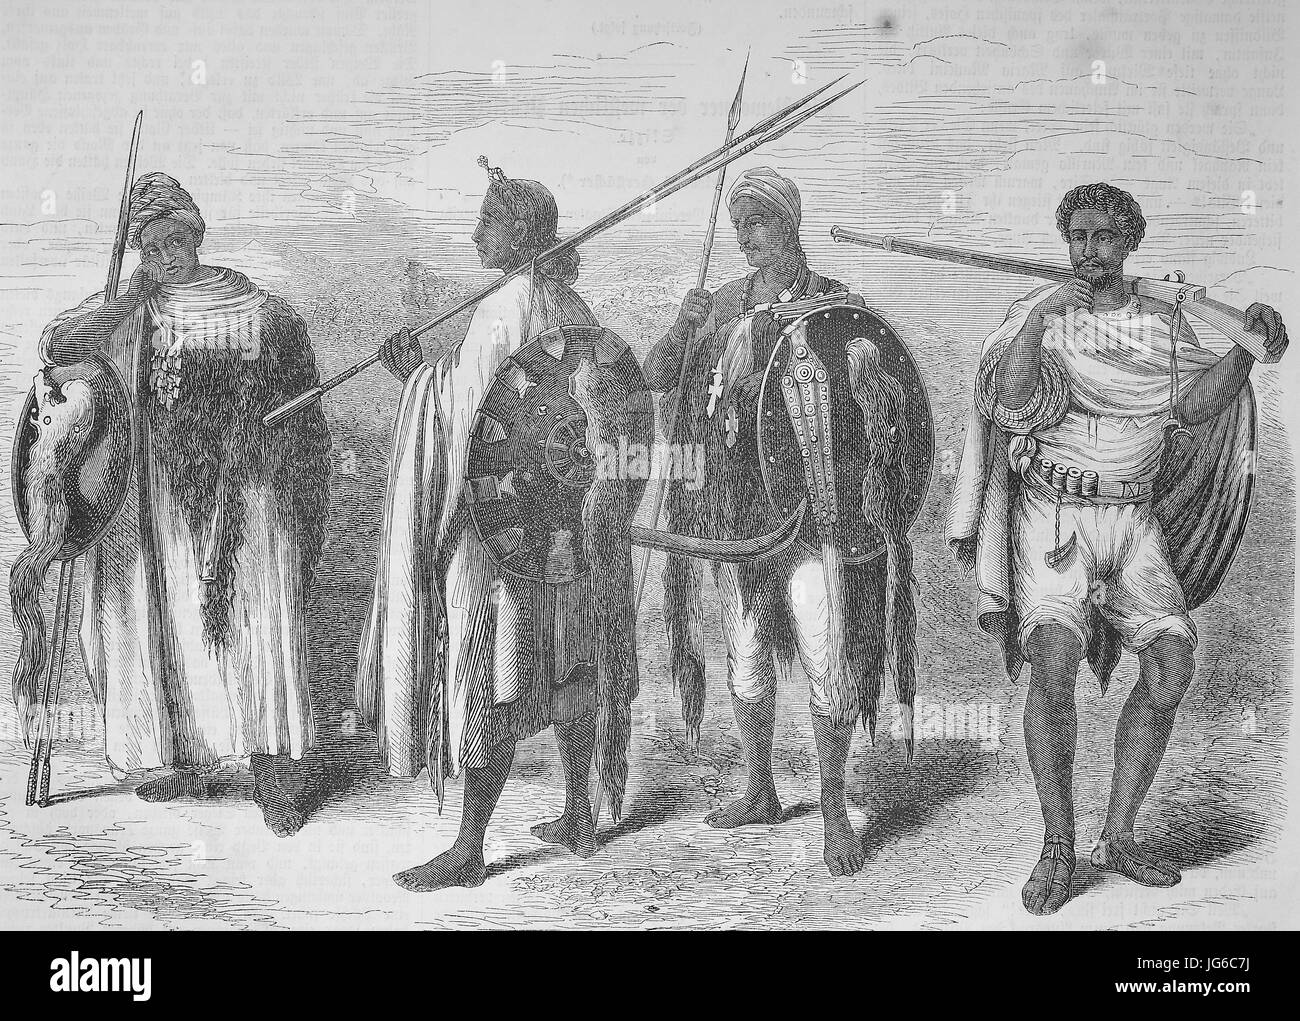 Digital improved:, Warriors from Abyssinia, Ethiopian Empire, Ethiopia, illustration from the 19th century Stock Photo